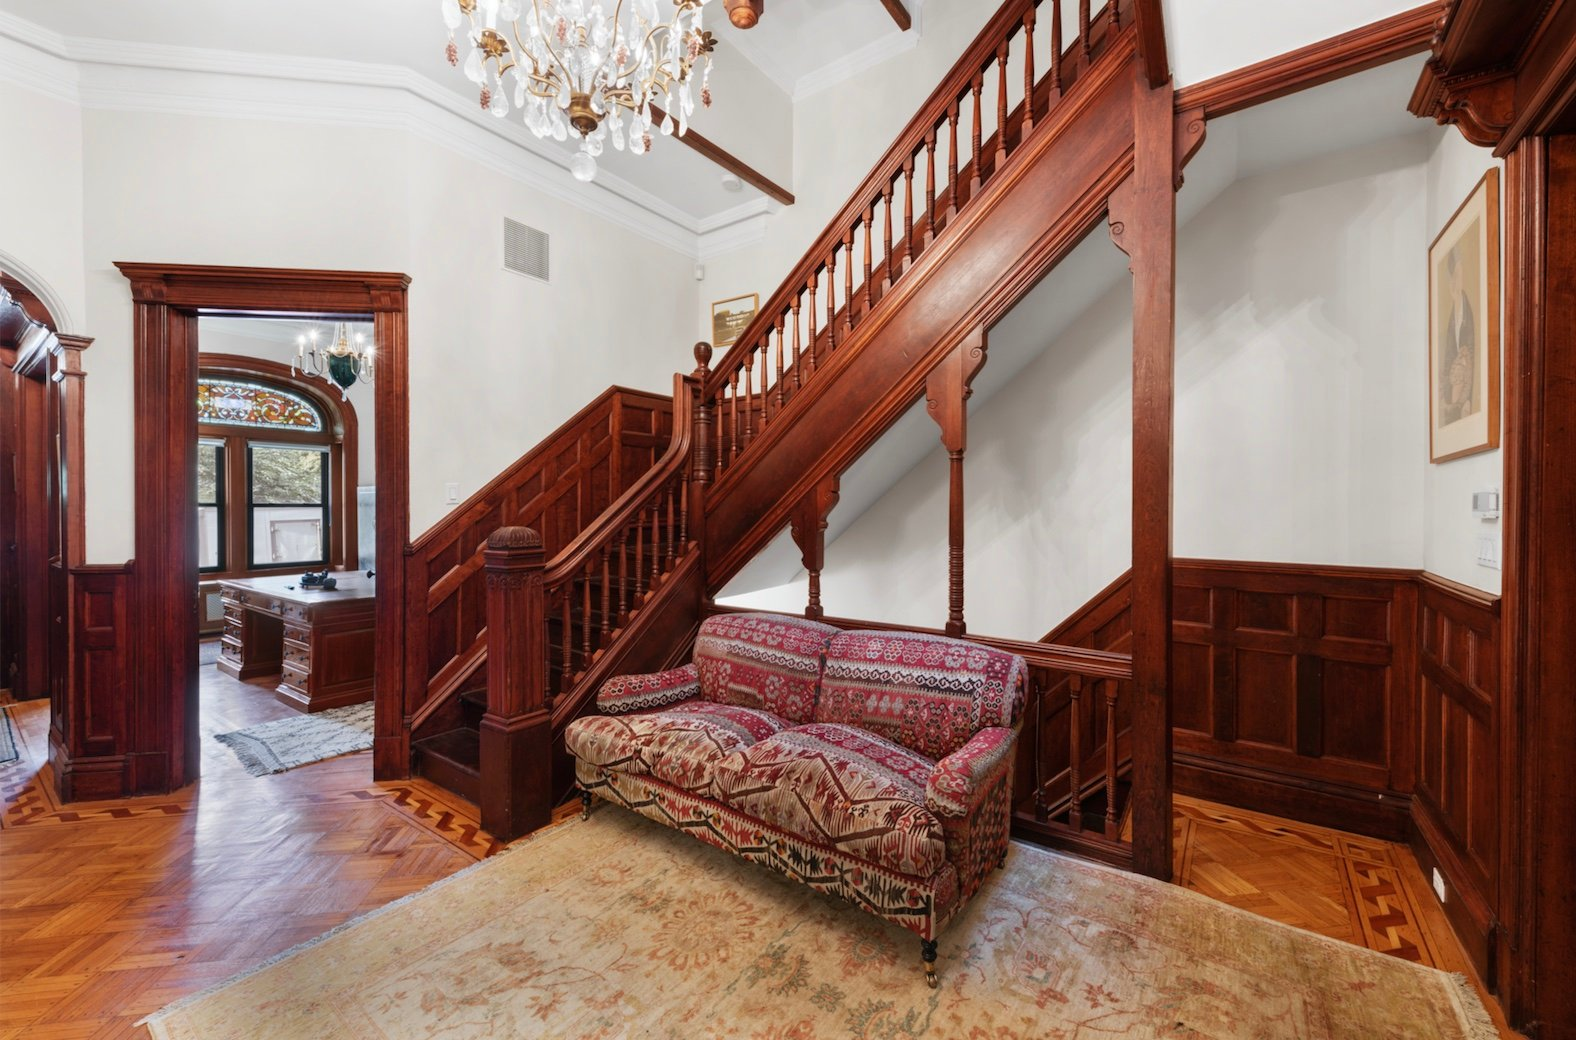 123 West 122nd Street, Harlem, Townhouse, Brownstone, cool listings, Harlem,